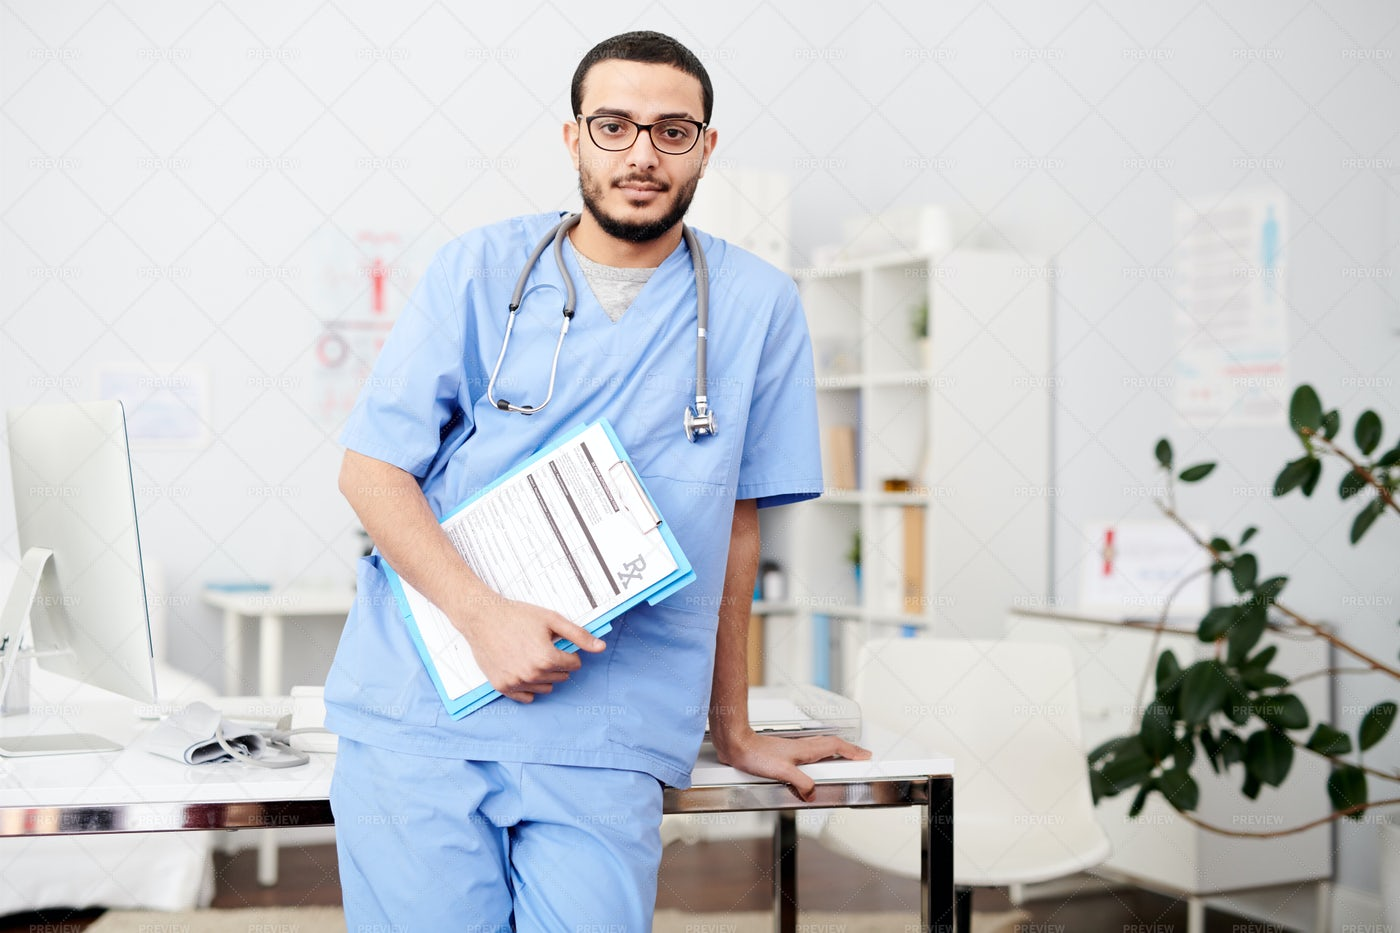 Middle-Eastern Physician Posing In...: Stock Photos